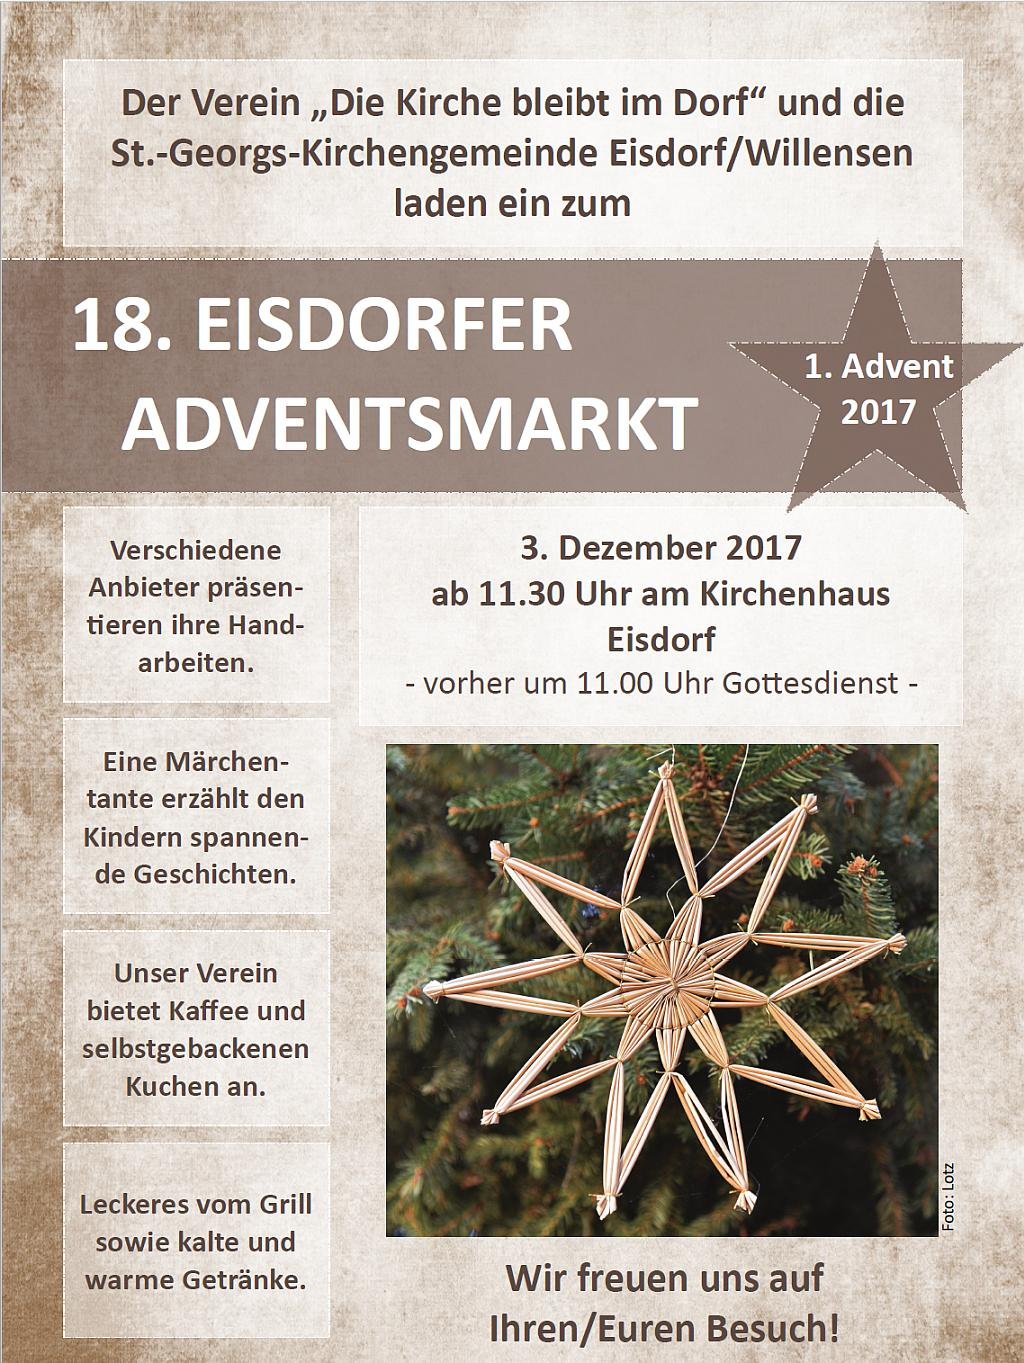 Eisdorfer Adventsmarkt 2017